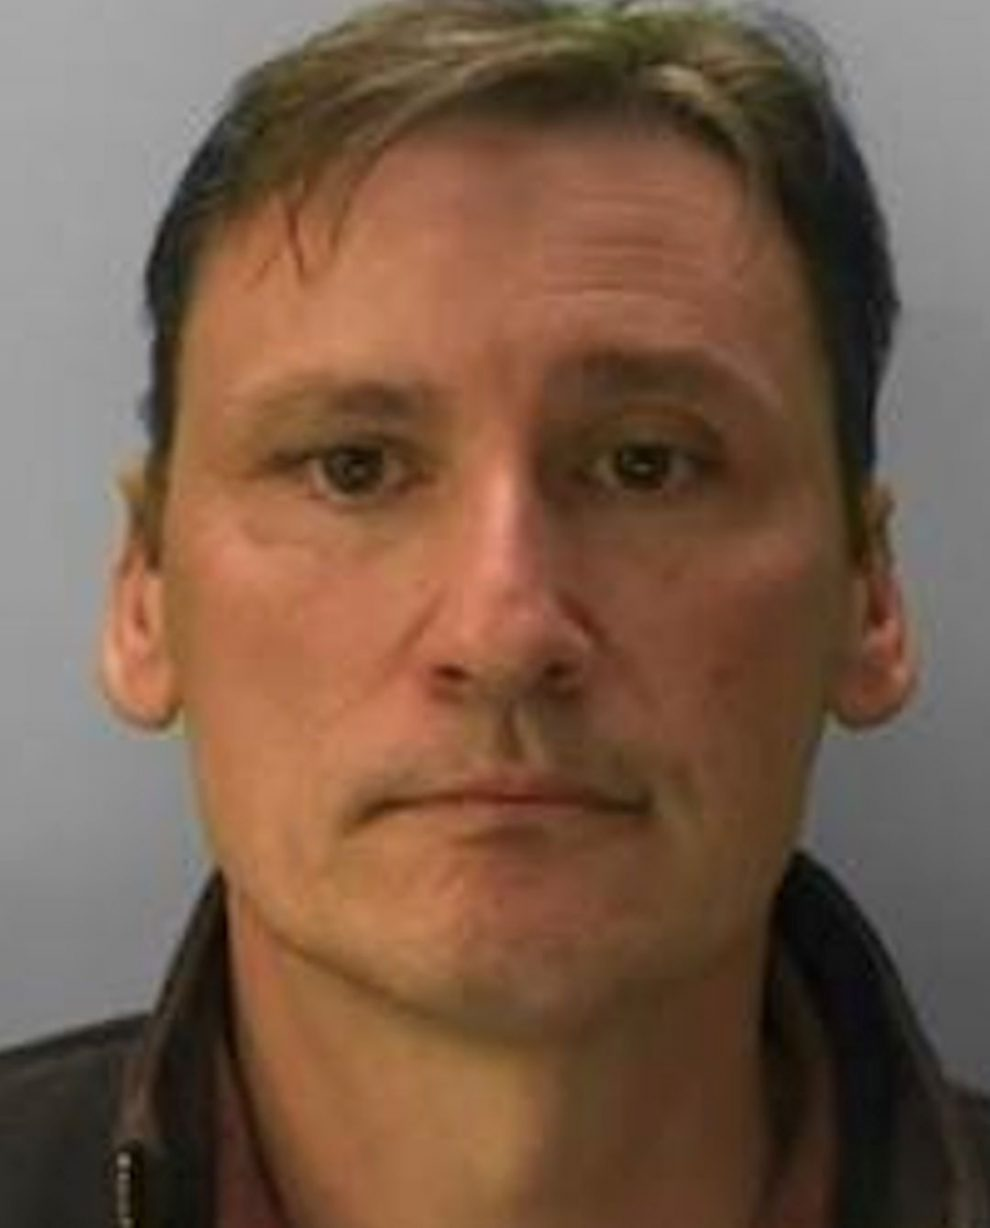 Police are searching for missing Andrew Scott from Herstmonceux